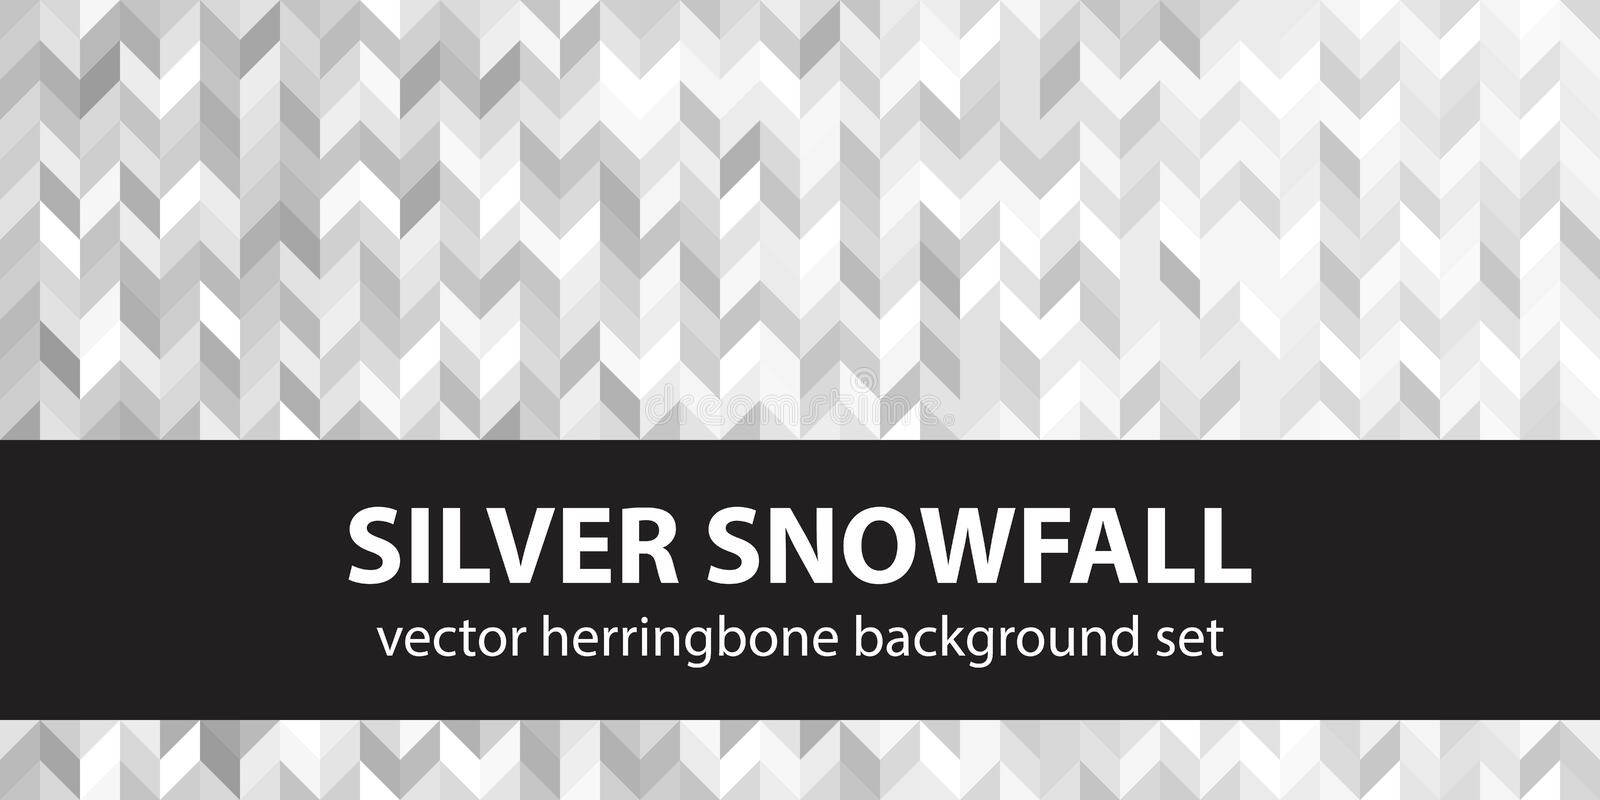 Herringbone pattern set Silver Snowfall. Vector seamless parquet backgrounds. With gray, silver and white polygons stock illustration